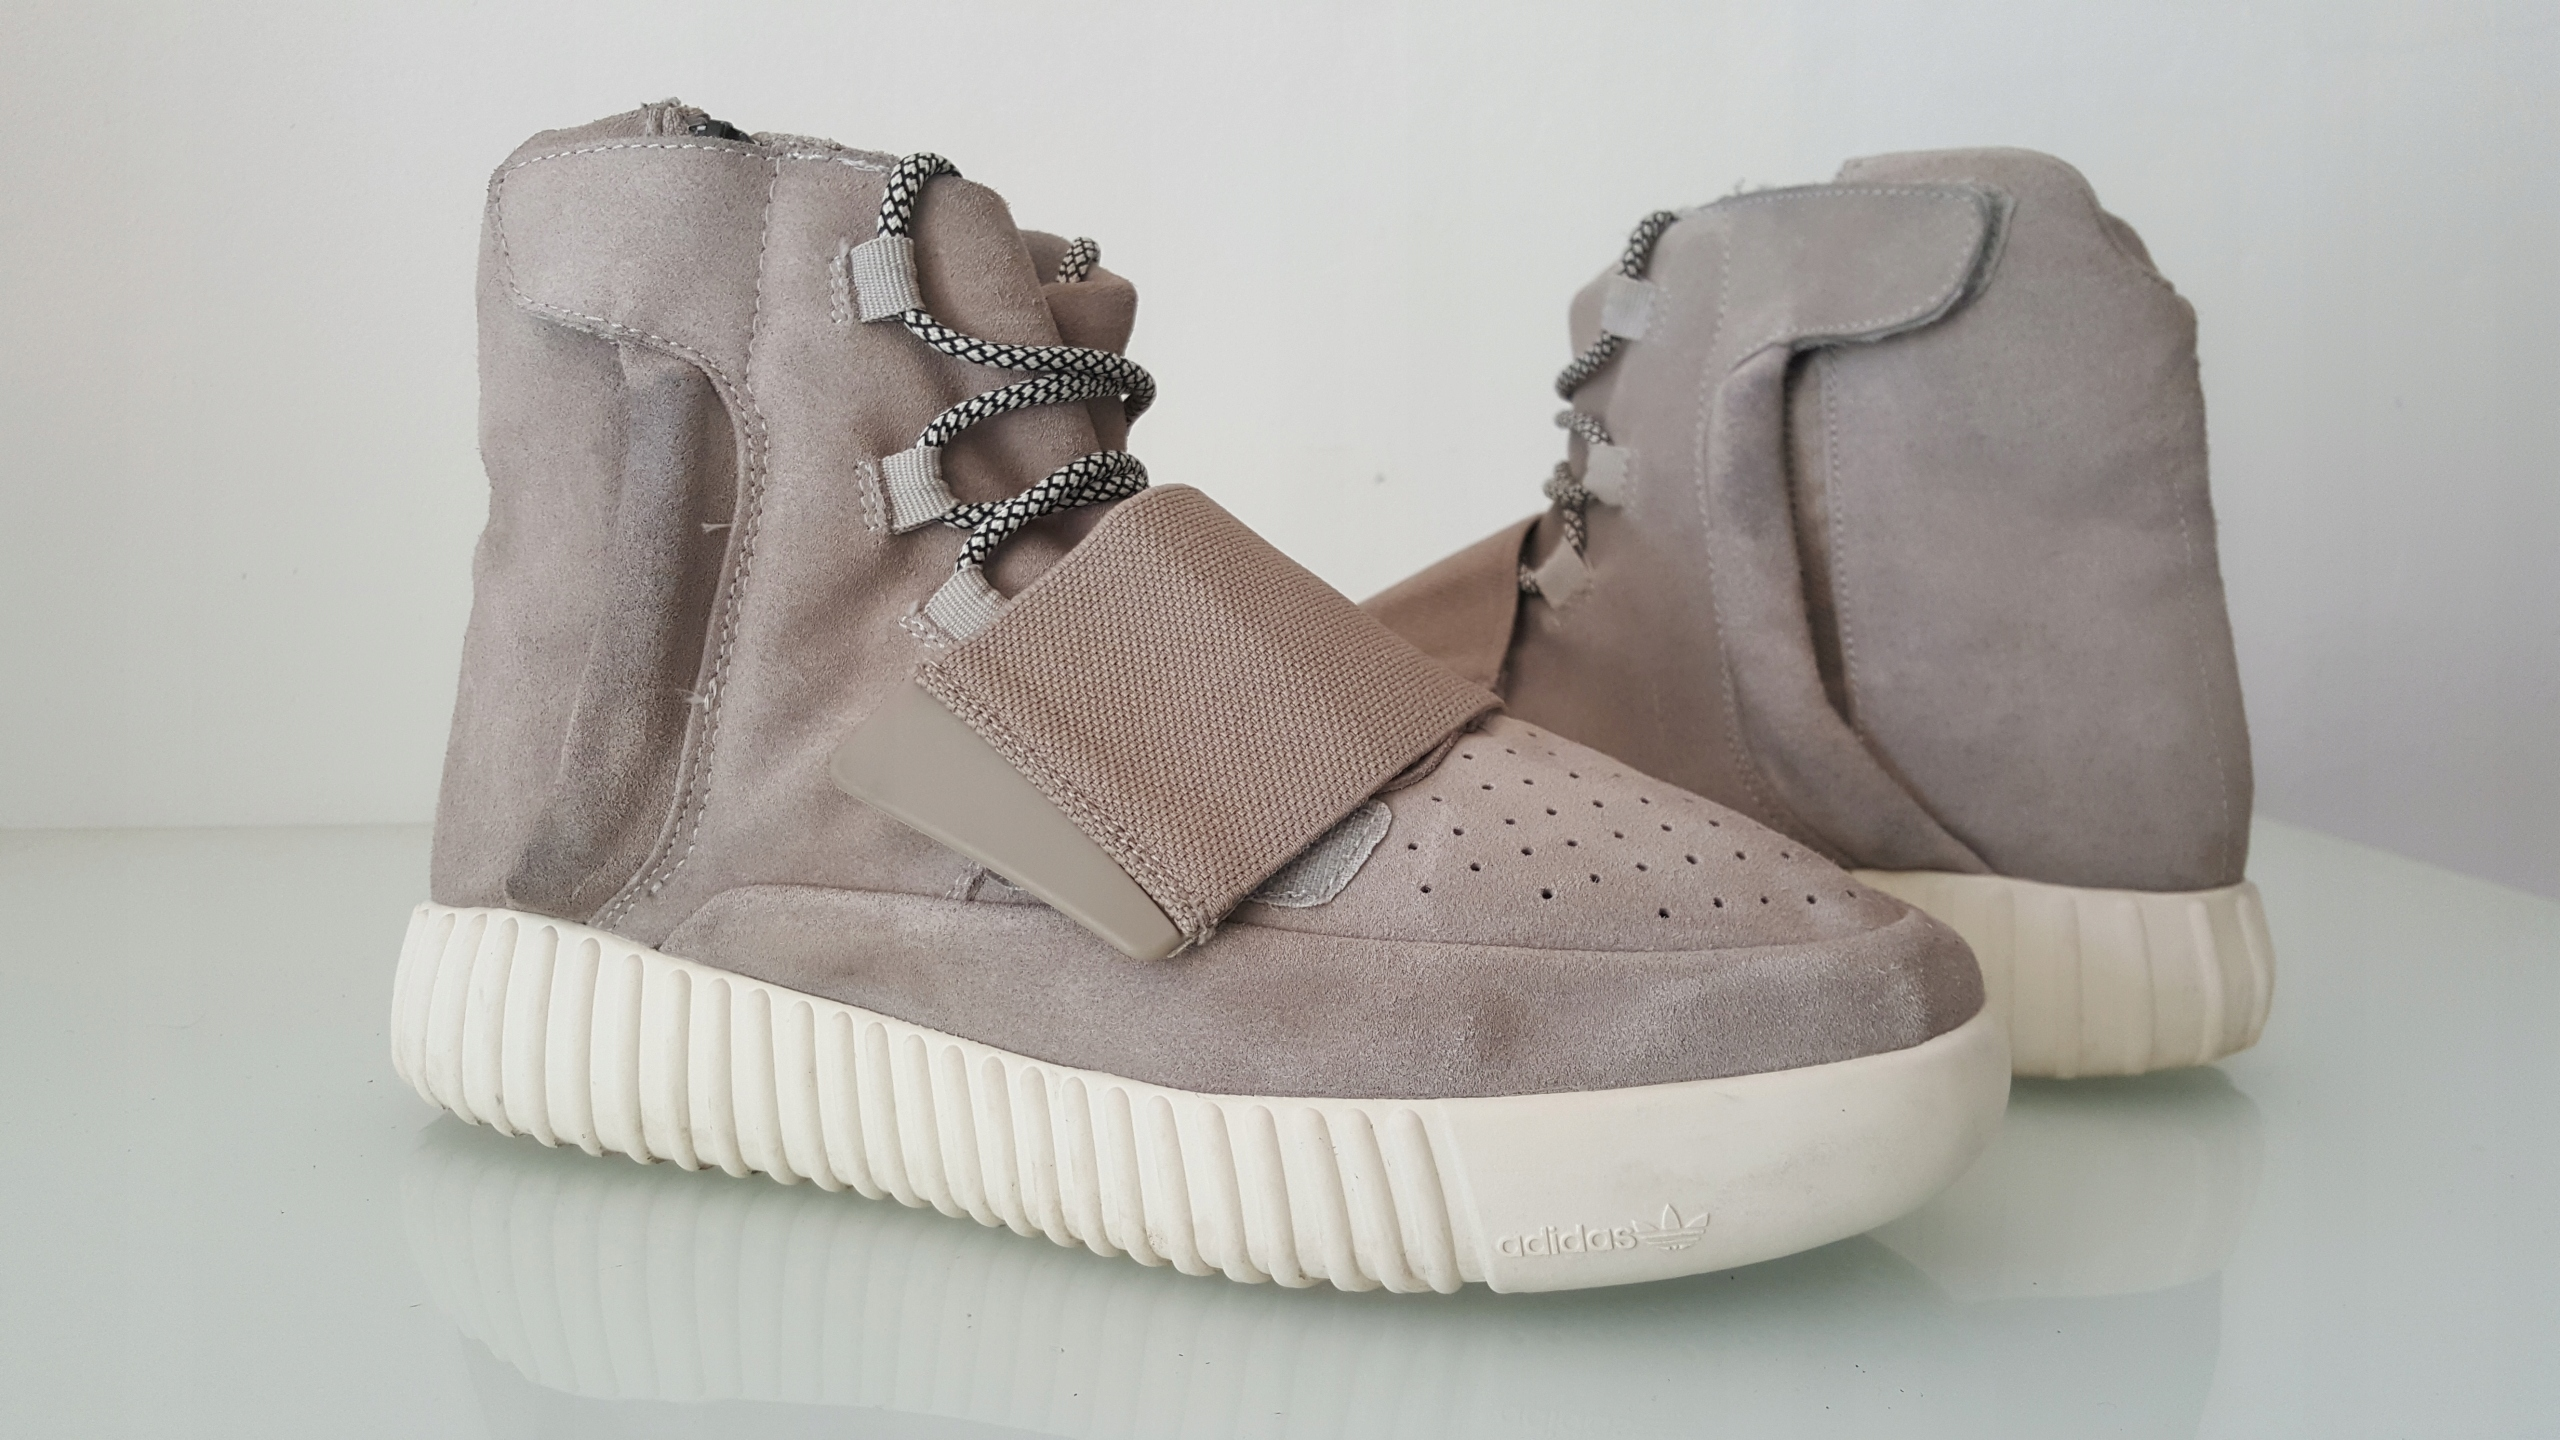 san francisco ae663 0462b ADIDAS YEEZY 750 BOOST OG kanye west 44 sneakers